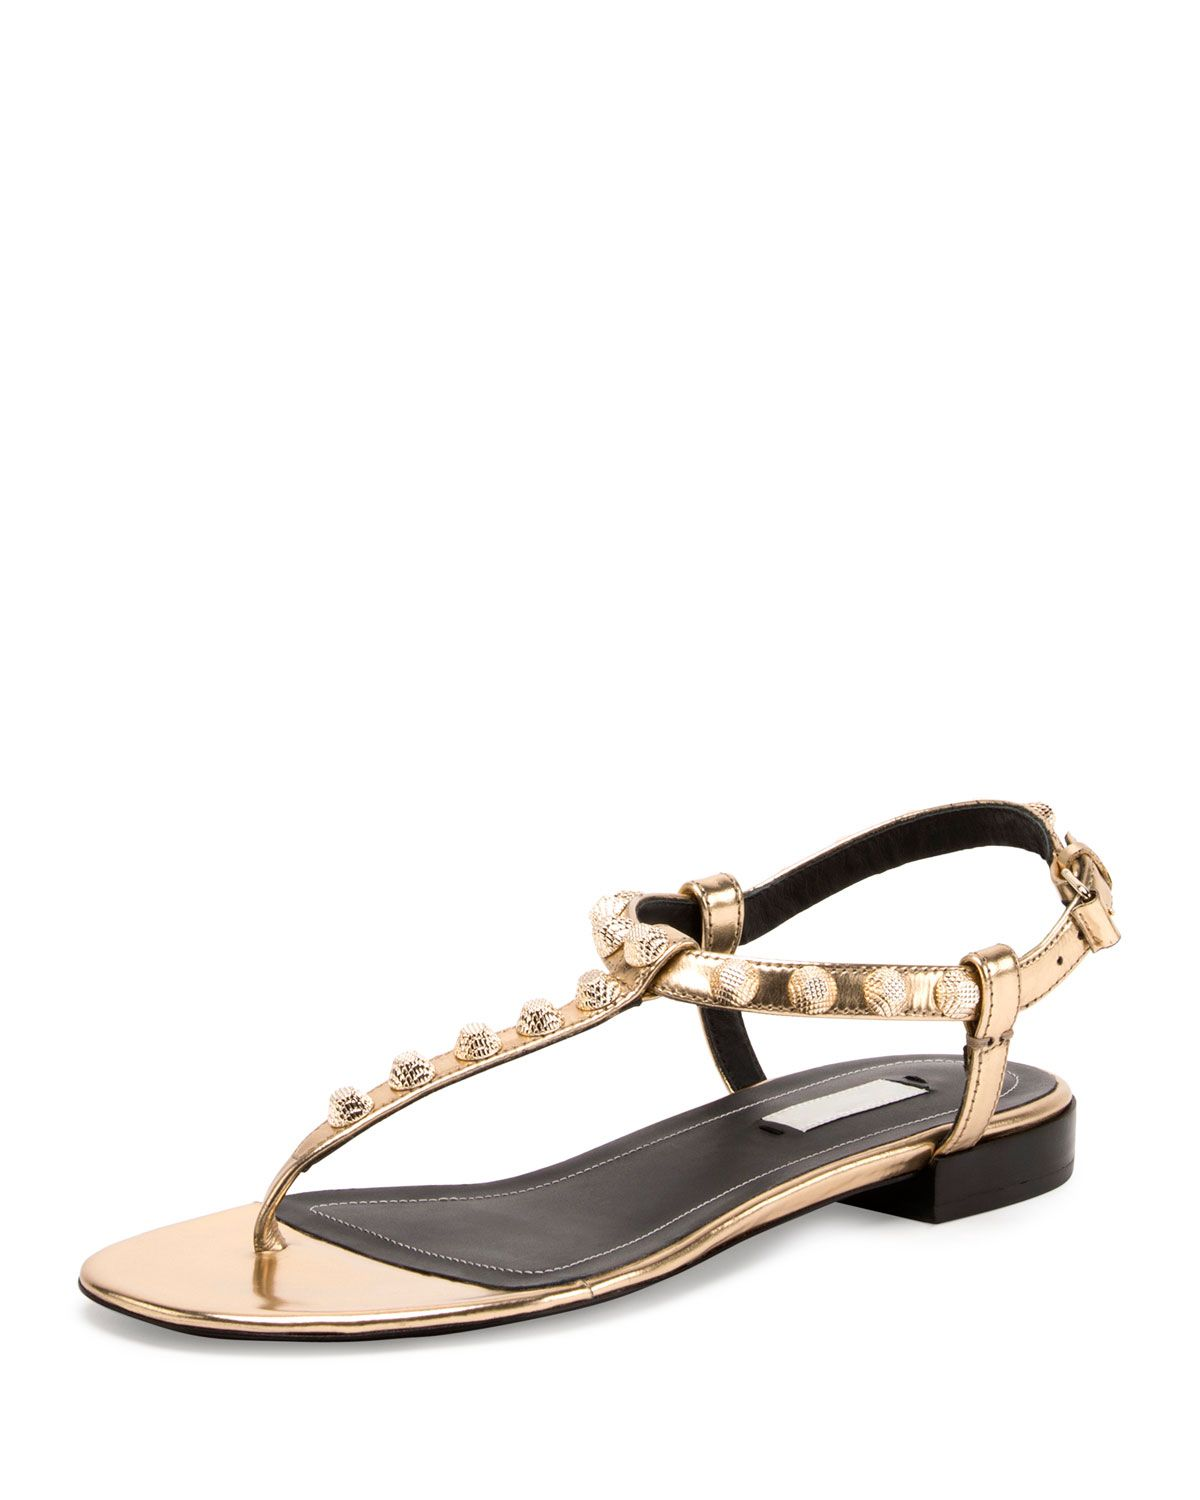 6525ab78903 Studded Leather T-Strap Sandal